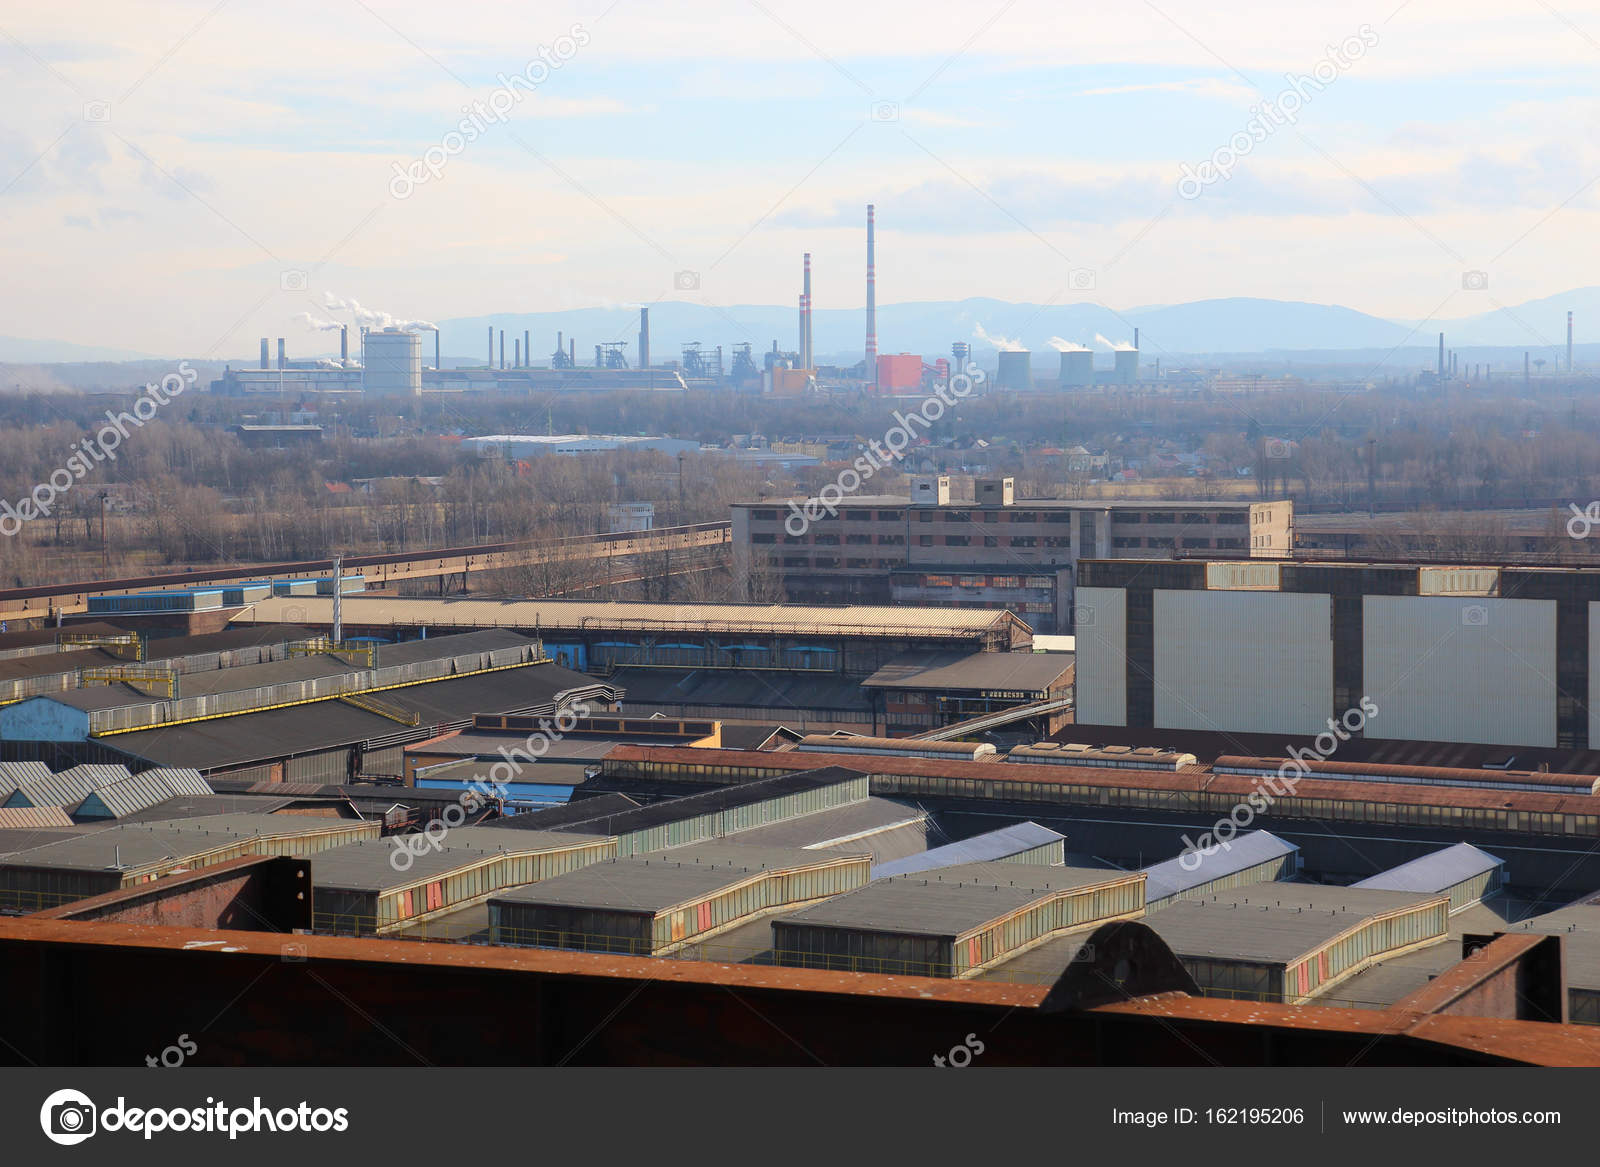 Industrial Landscape Factories And Warehouses Stock Photo